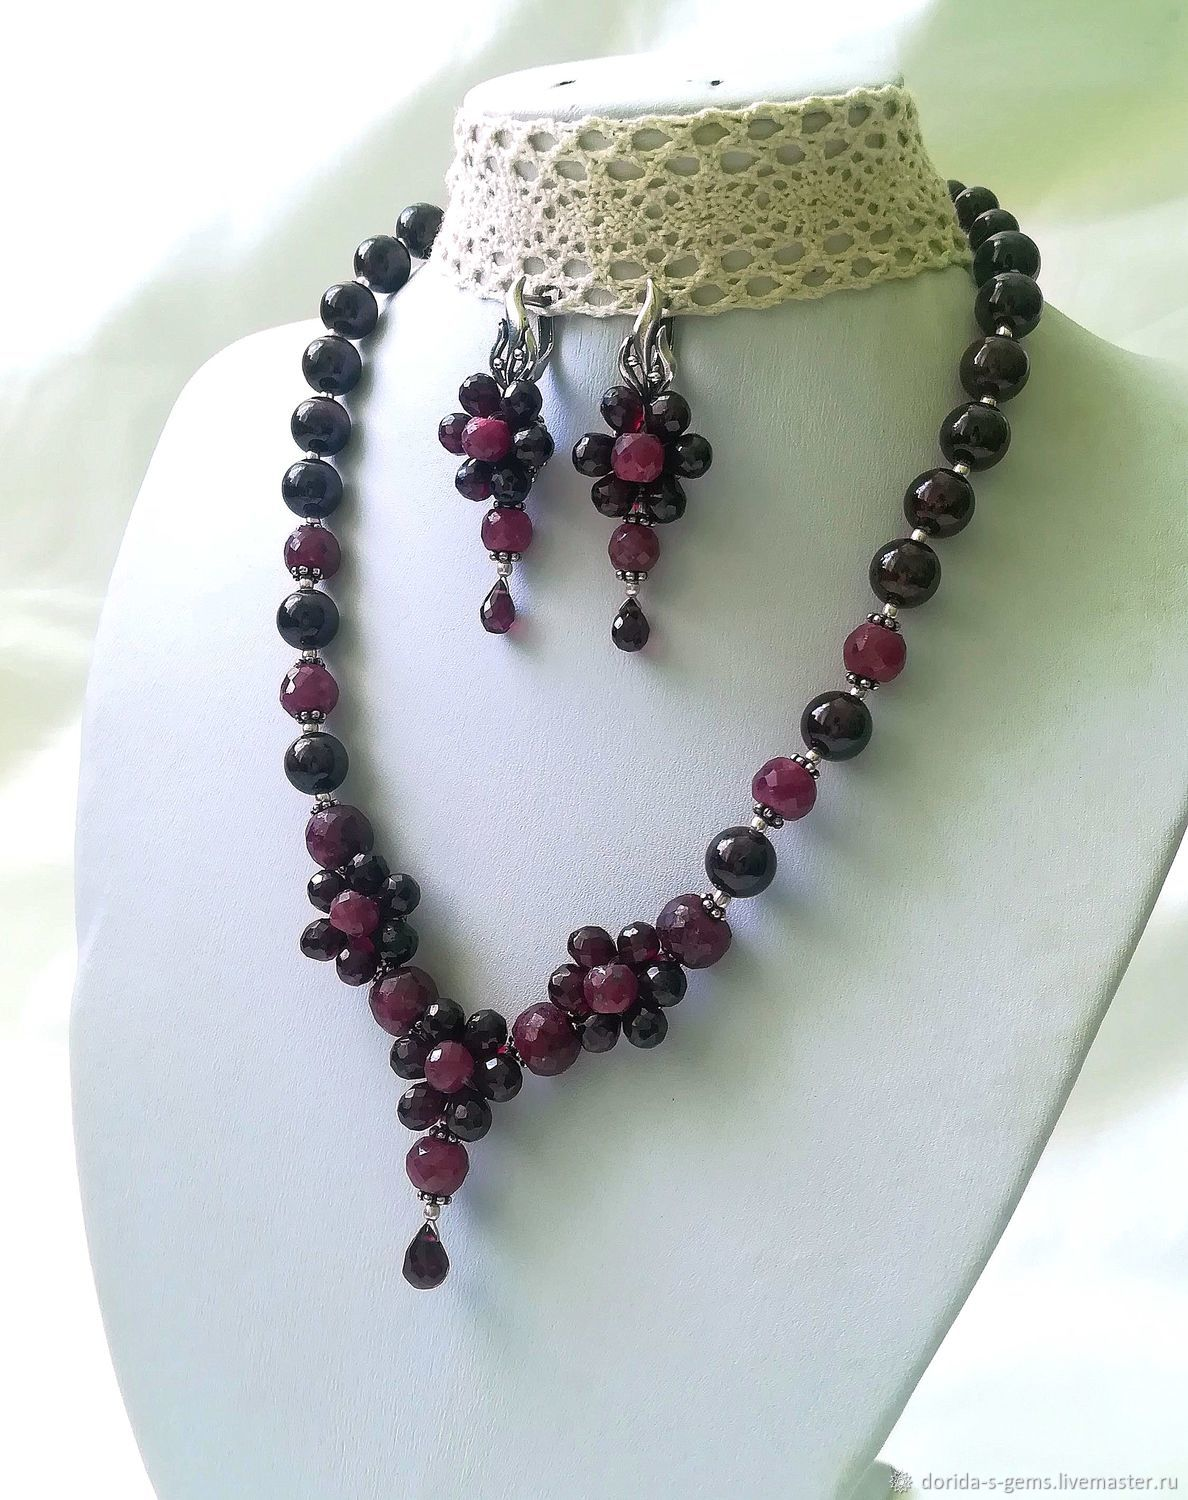 author's necklace, handmade jewelry, garnet necklace, garnet necklace, garnet beads, garnet necklace, elegant necklace, jewelry pomegranate necklace